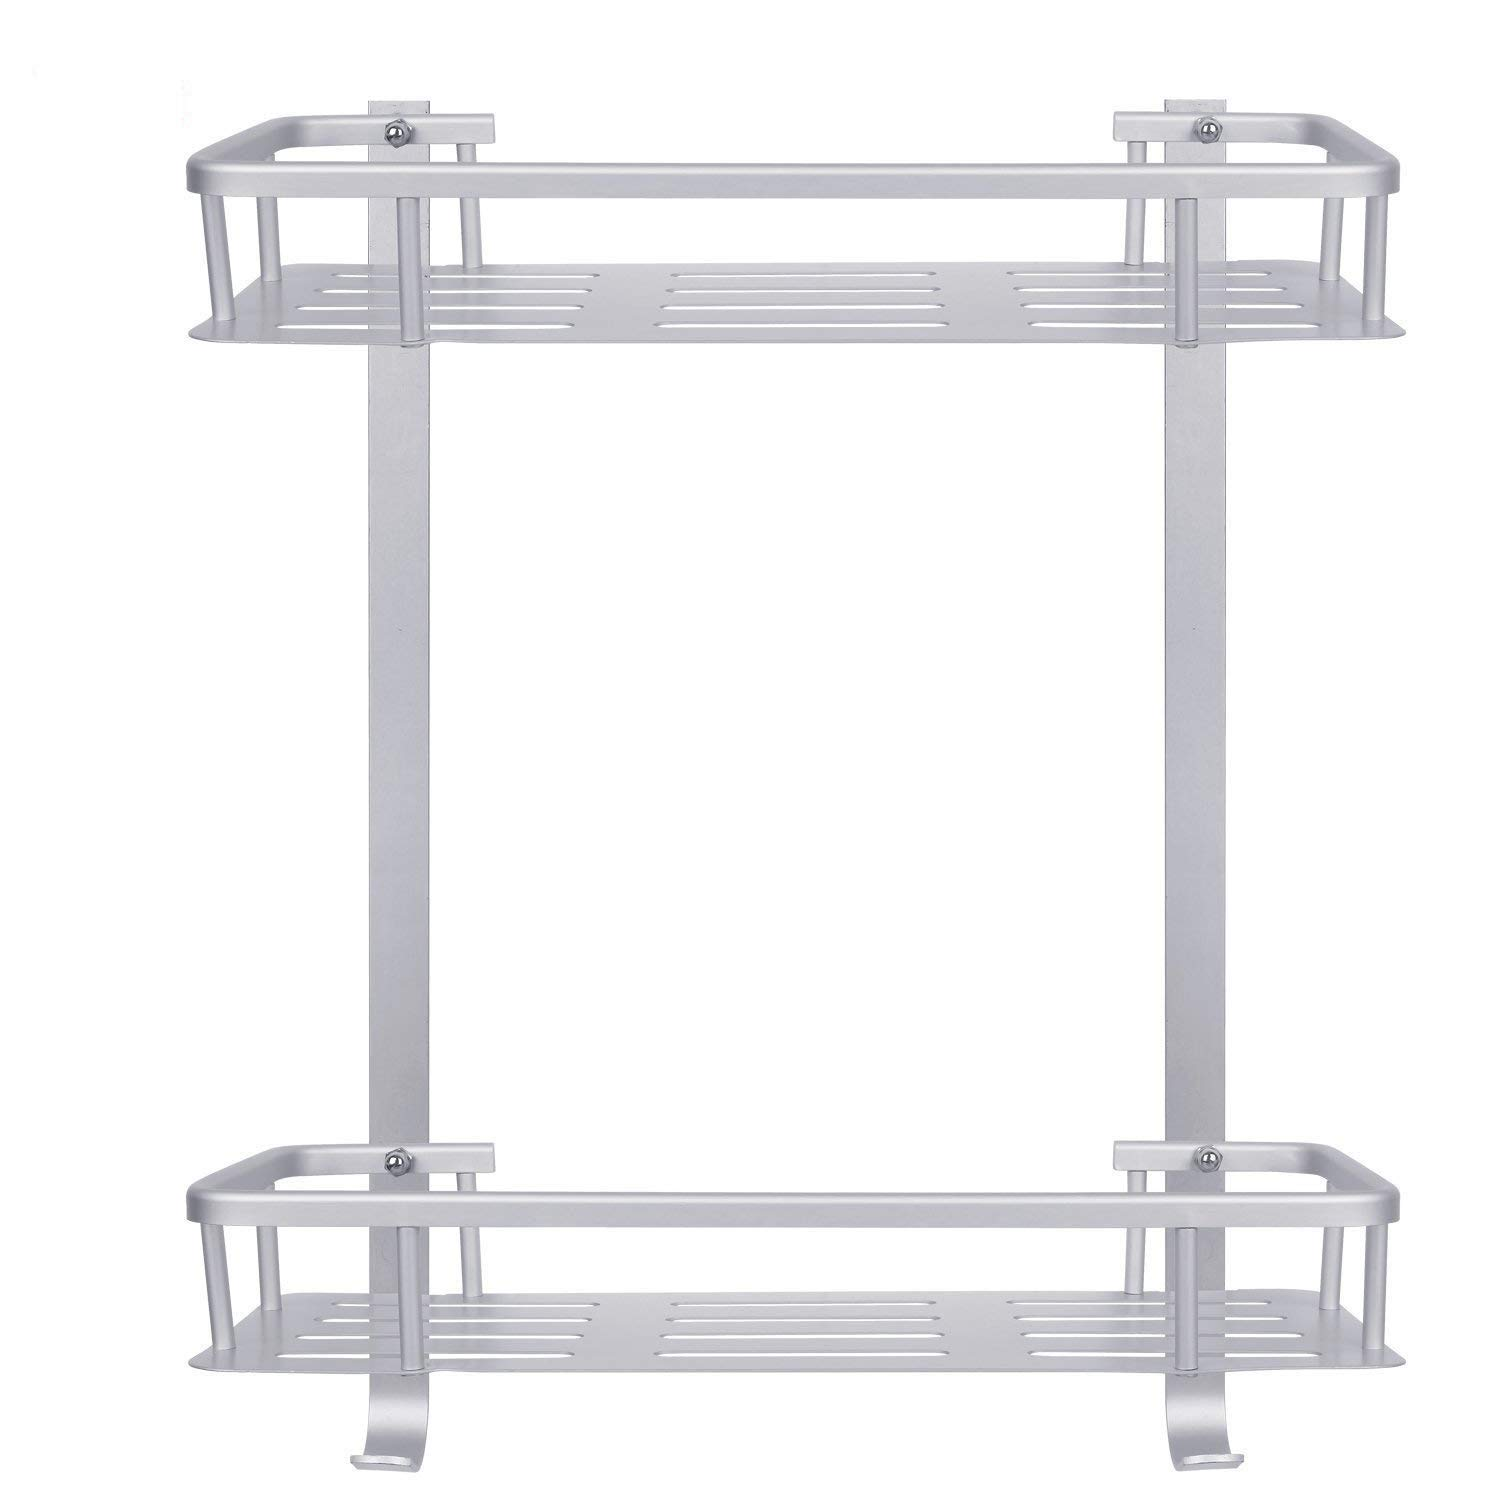 [Upgraded] Bathroom Shower Shelf, Metplus No Drilling Adhesive Never Rust Space Aluminum Corner Storage Shelves 2 Tiers Wall Mounted Storage Basket Shower Caddy Space Saver for Bathroom Toilet Kitchen